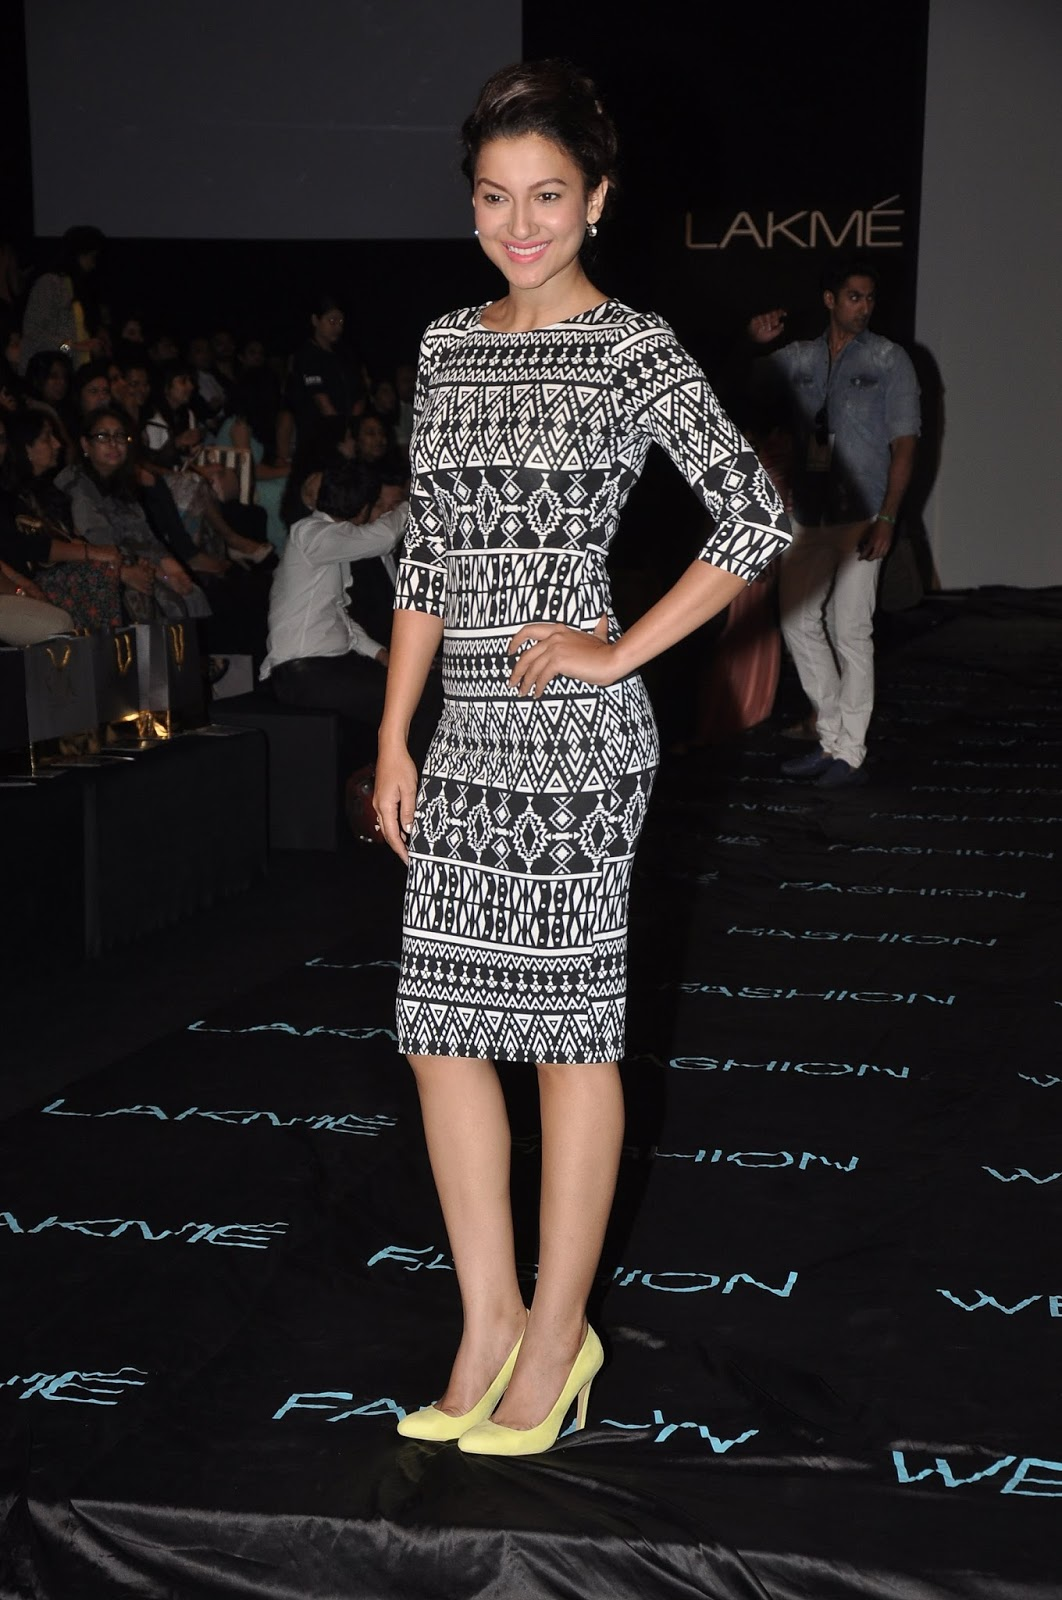 Gauhar khan lakme fashion week 4